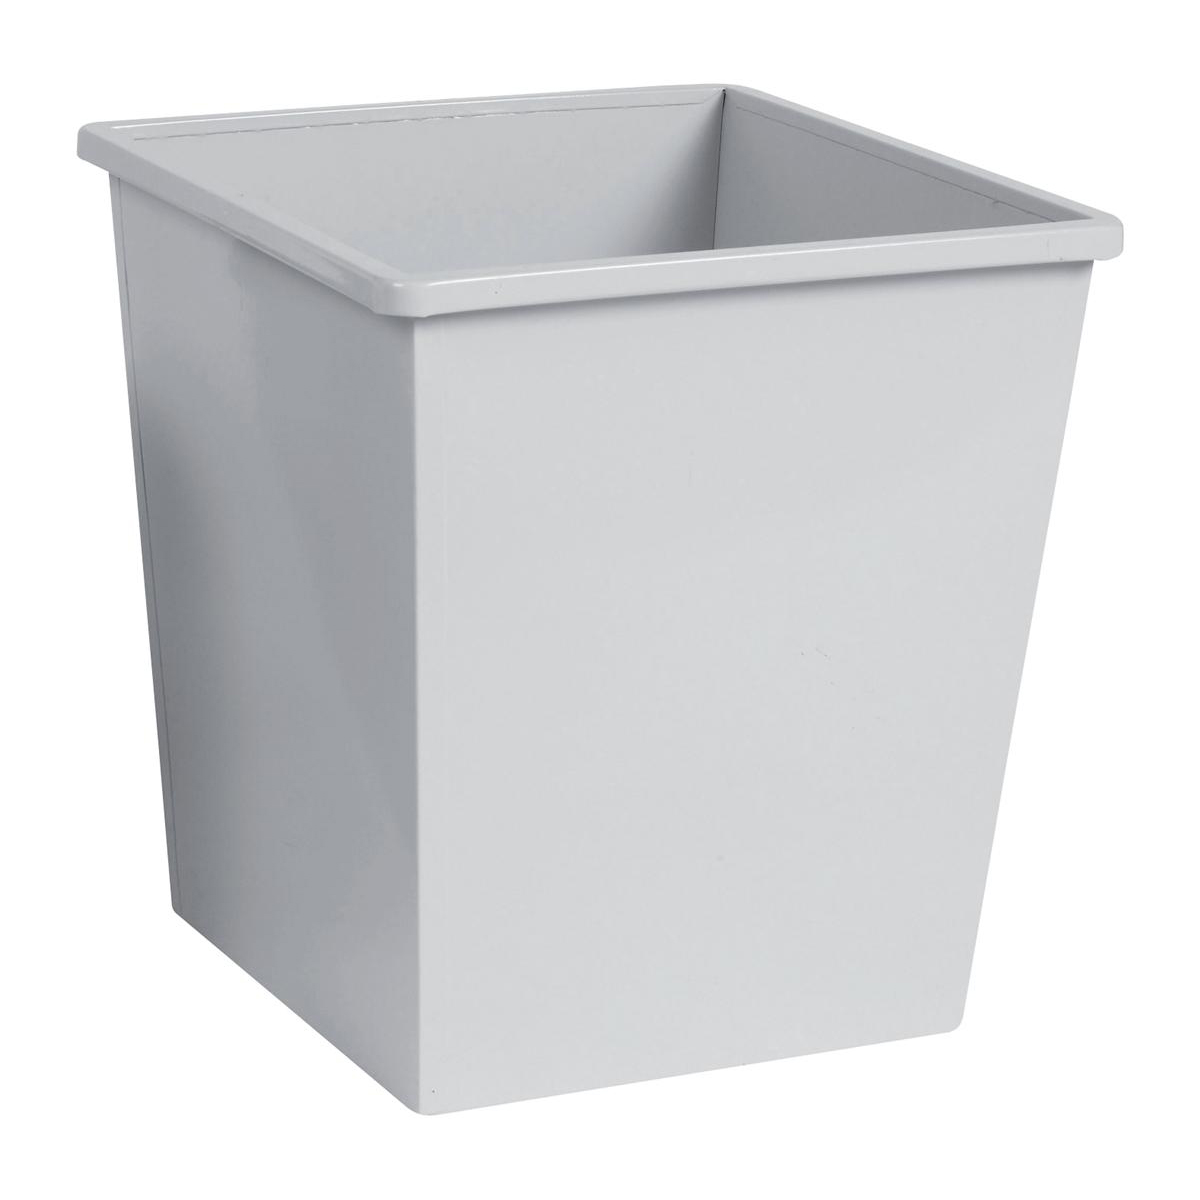 5 Star Facilities Waste Bin Square Metal Scratch Resistant W325xD325xH350mm 27 Litres Grey